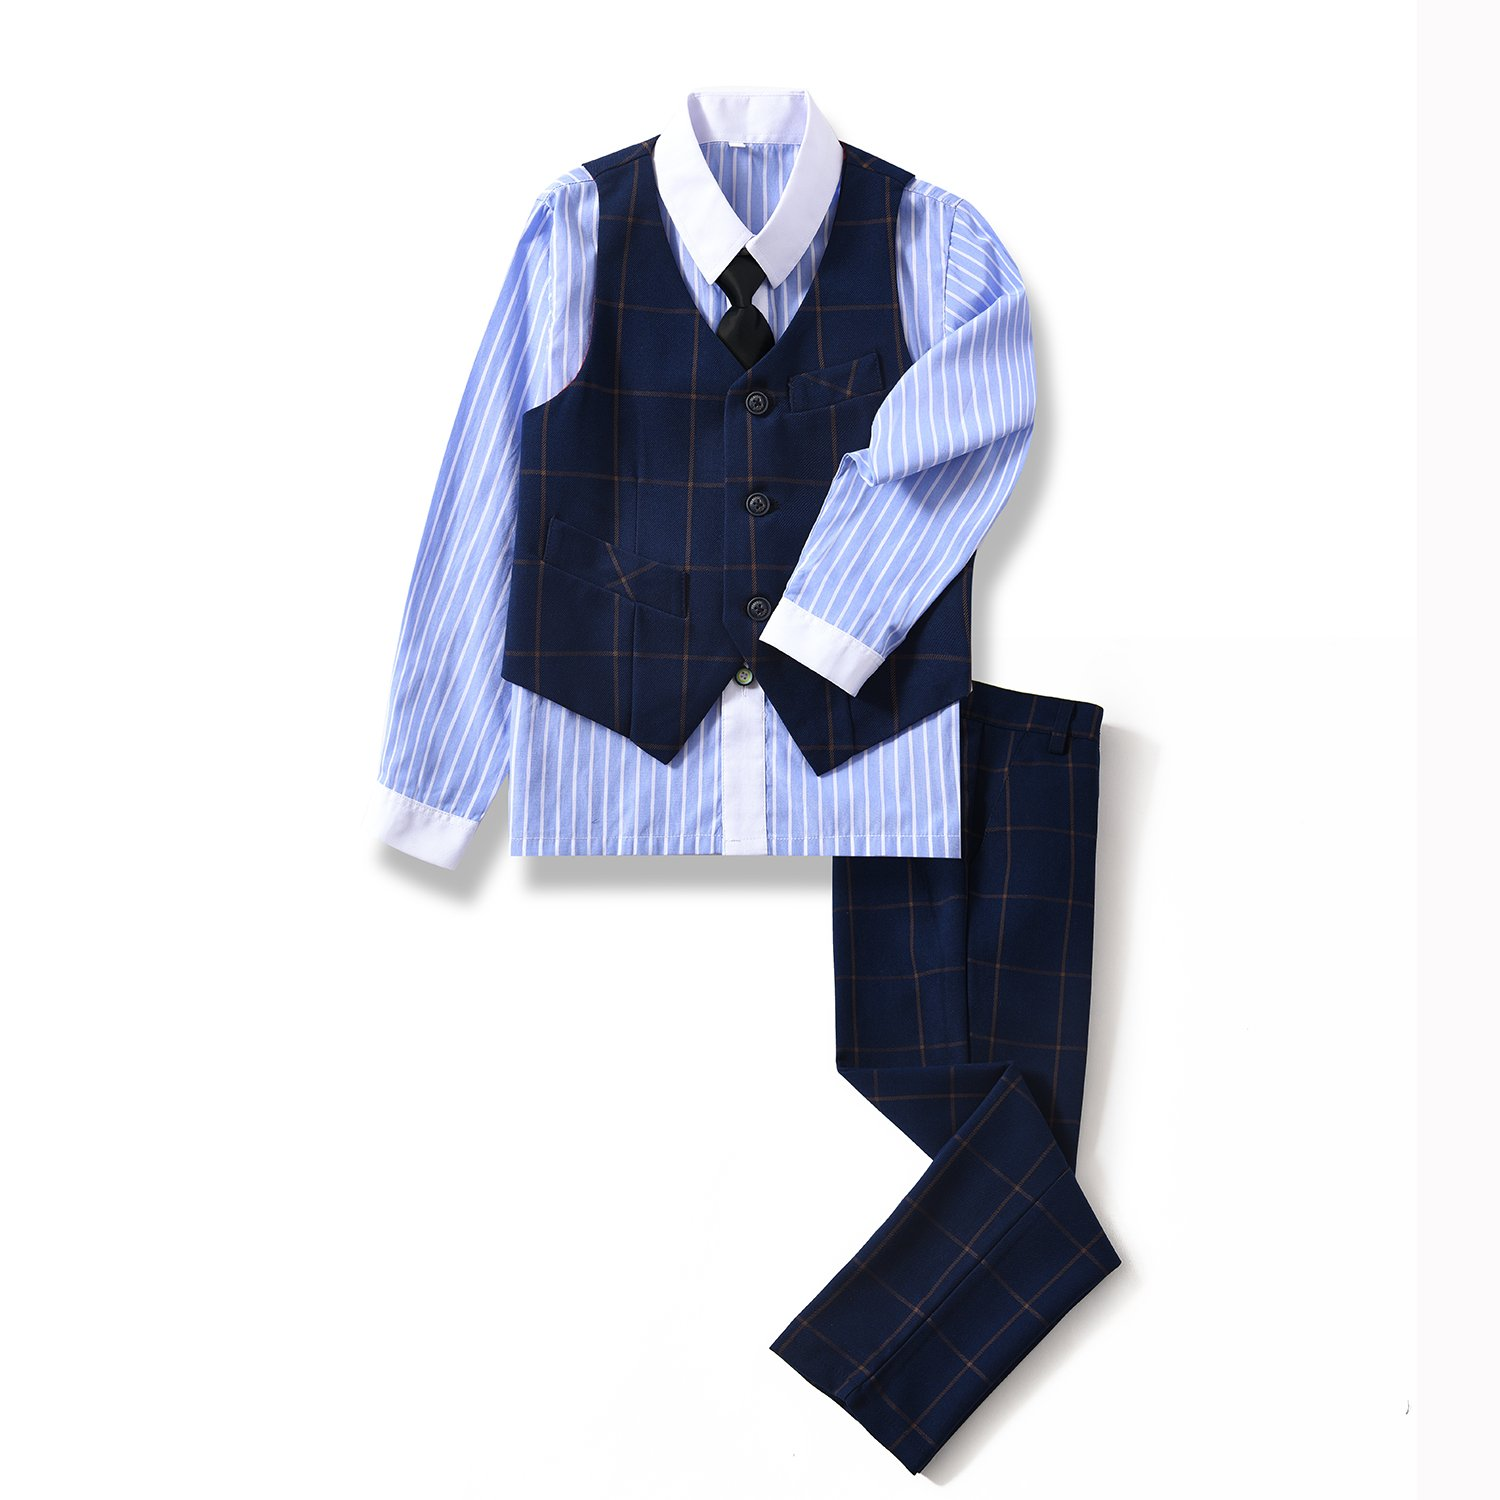 Yuanlu 4 Piece Youth Boys' Vest Set with Pants Dress Shirt and Tie for Wedding Navy Plaid Size 4T